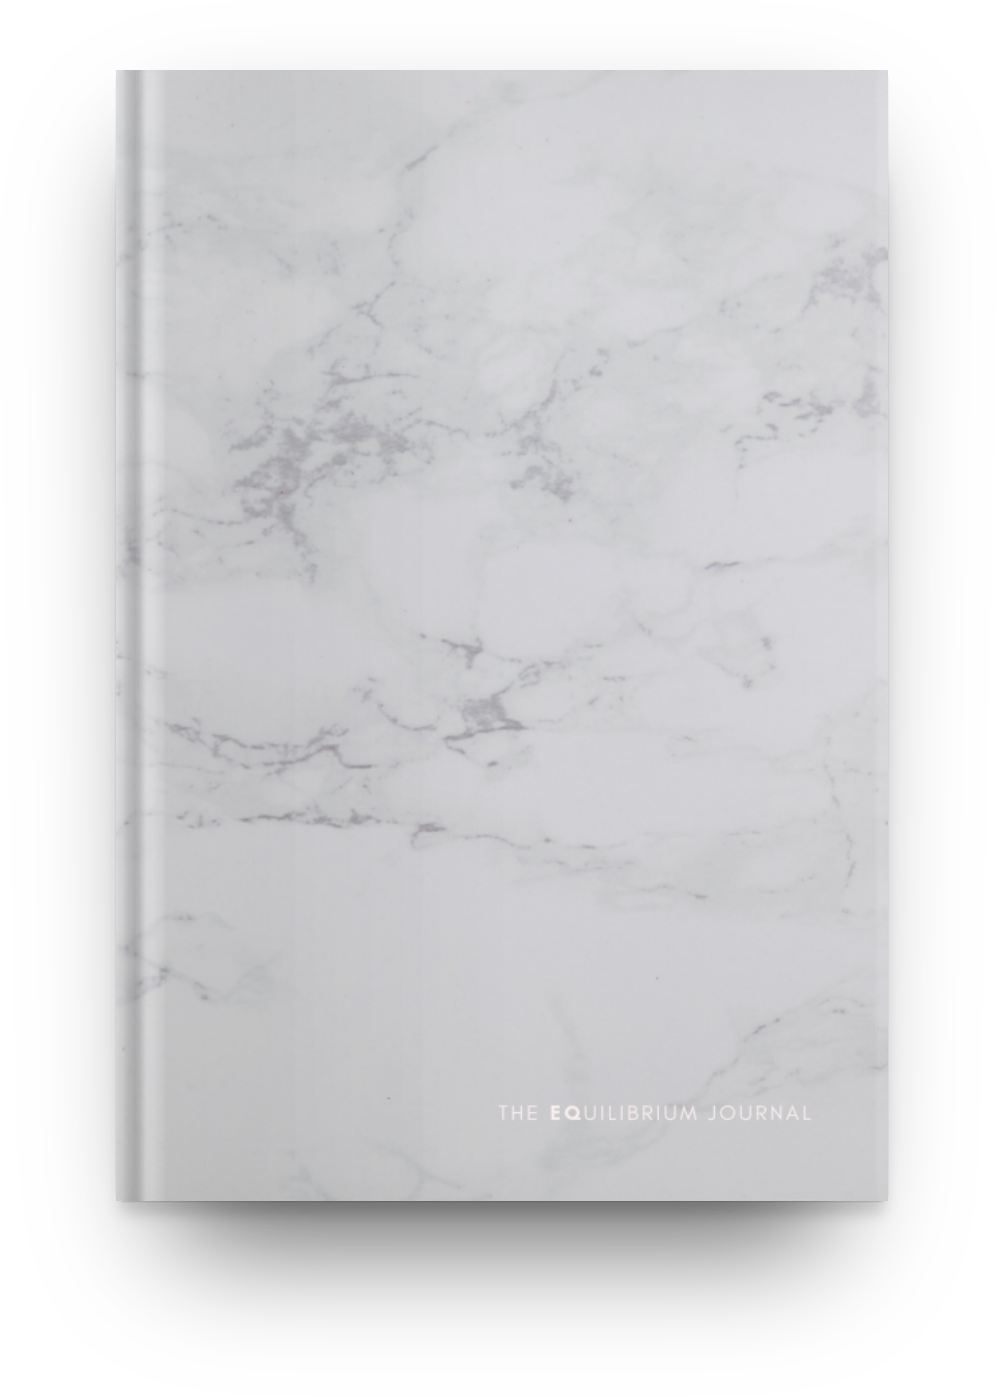 The Equilibrium Journal - The most effective framework to optimize daily performance and balance, and live each day as complete as possible.